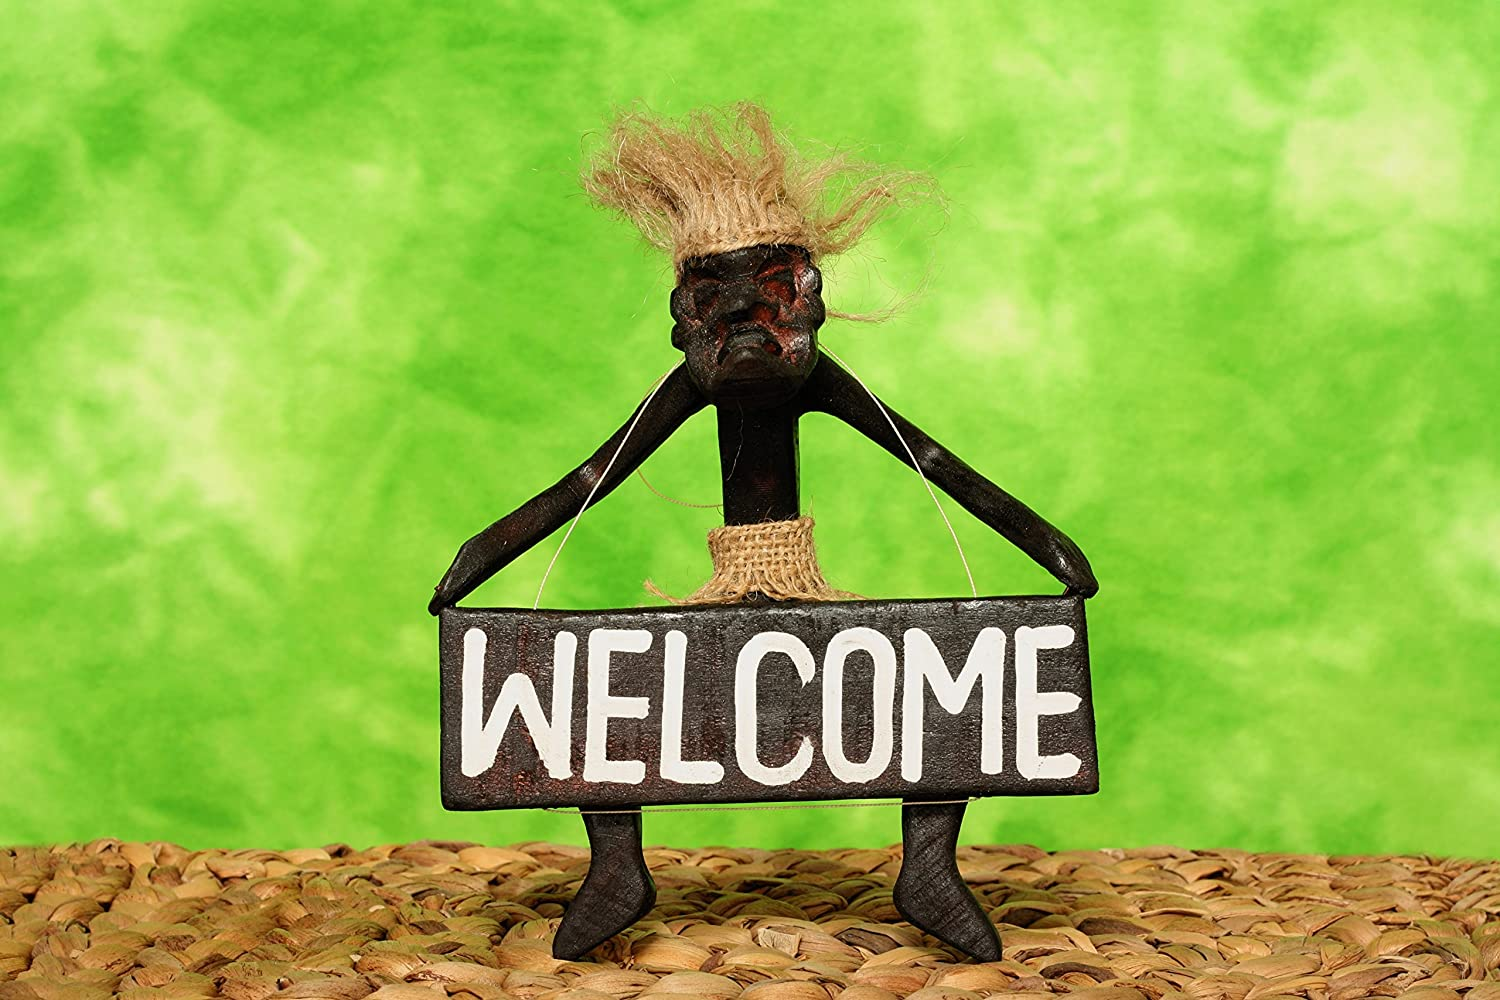 G6 Collection Handmade Wooden Primitive Tribal Statue Holding Welcome Sign Wall Sculpture Tiki Bar Handcrafted Unique Gift Art Decorative Home Decor Accent Figurine Decoration Artwork Hand Carved